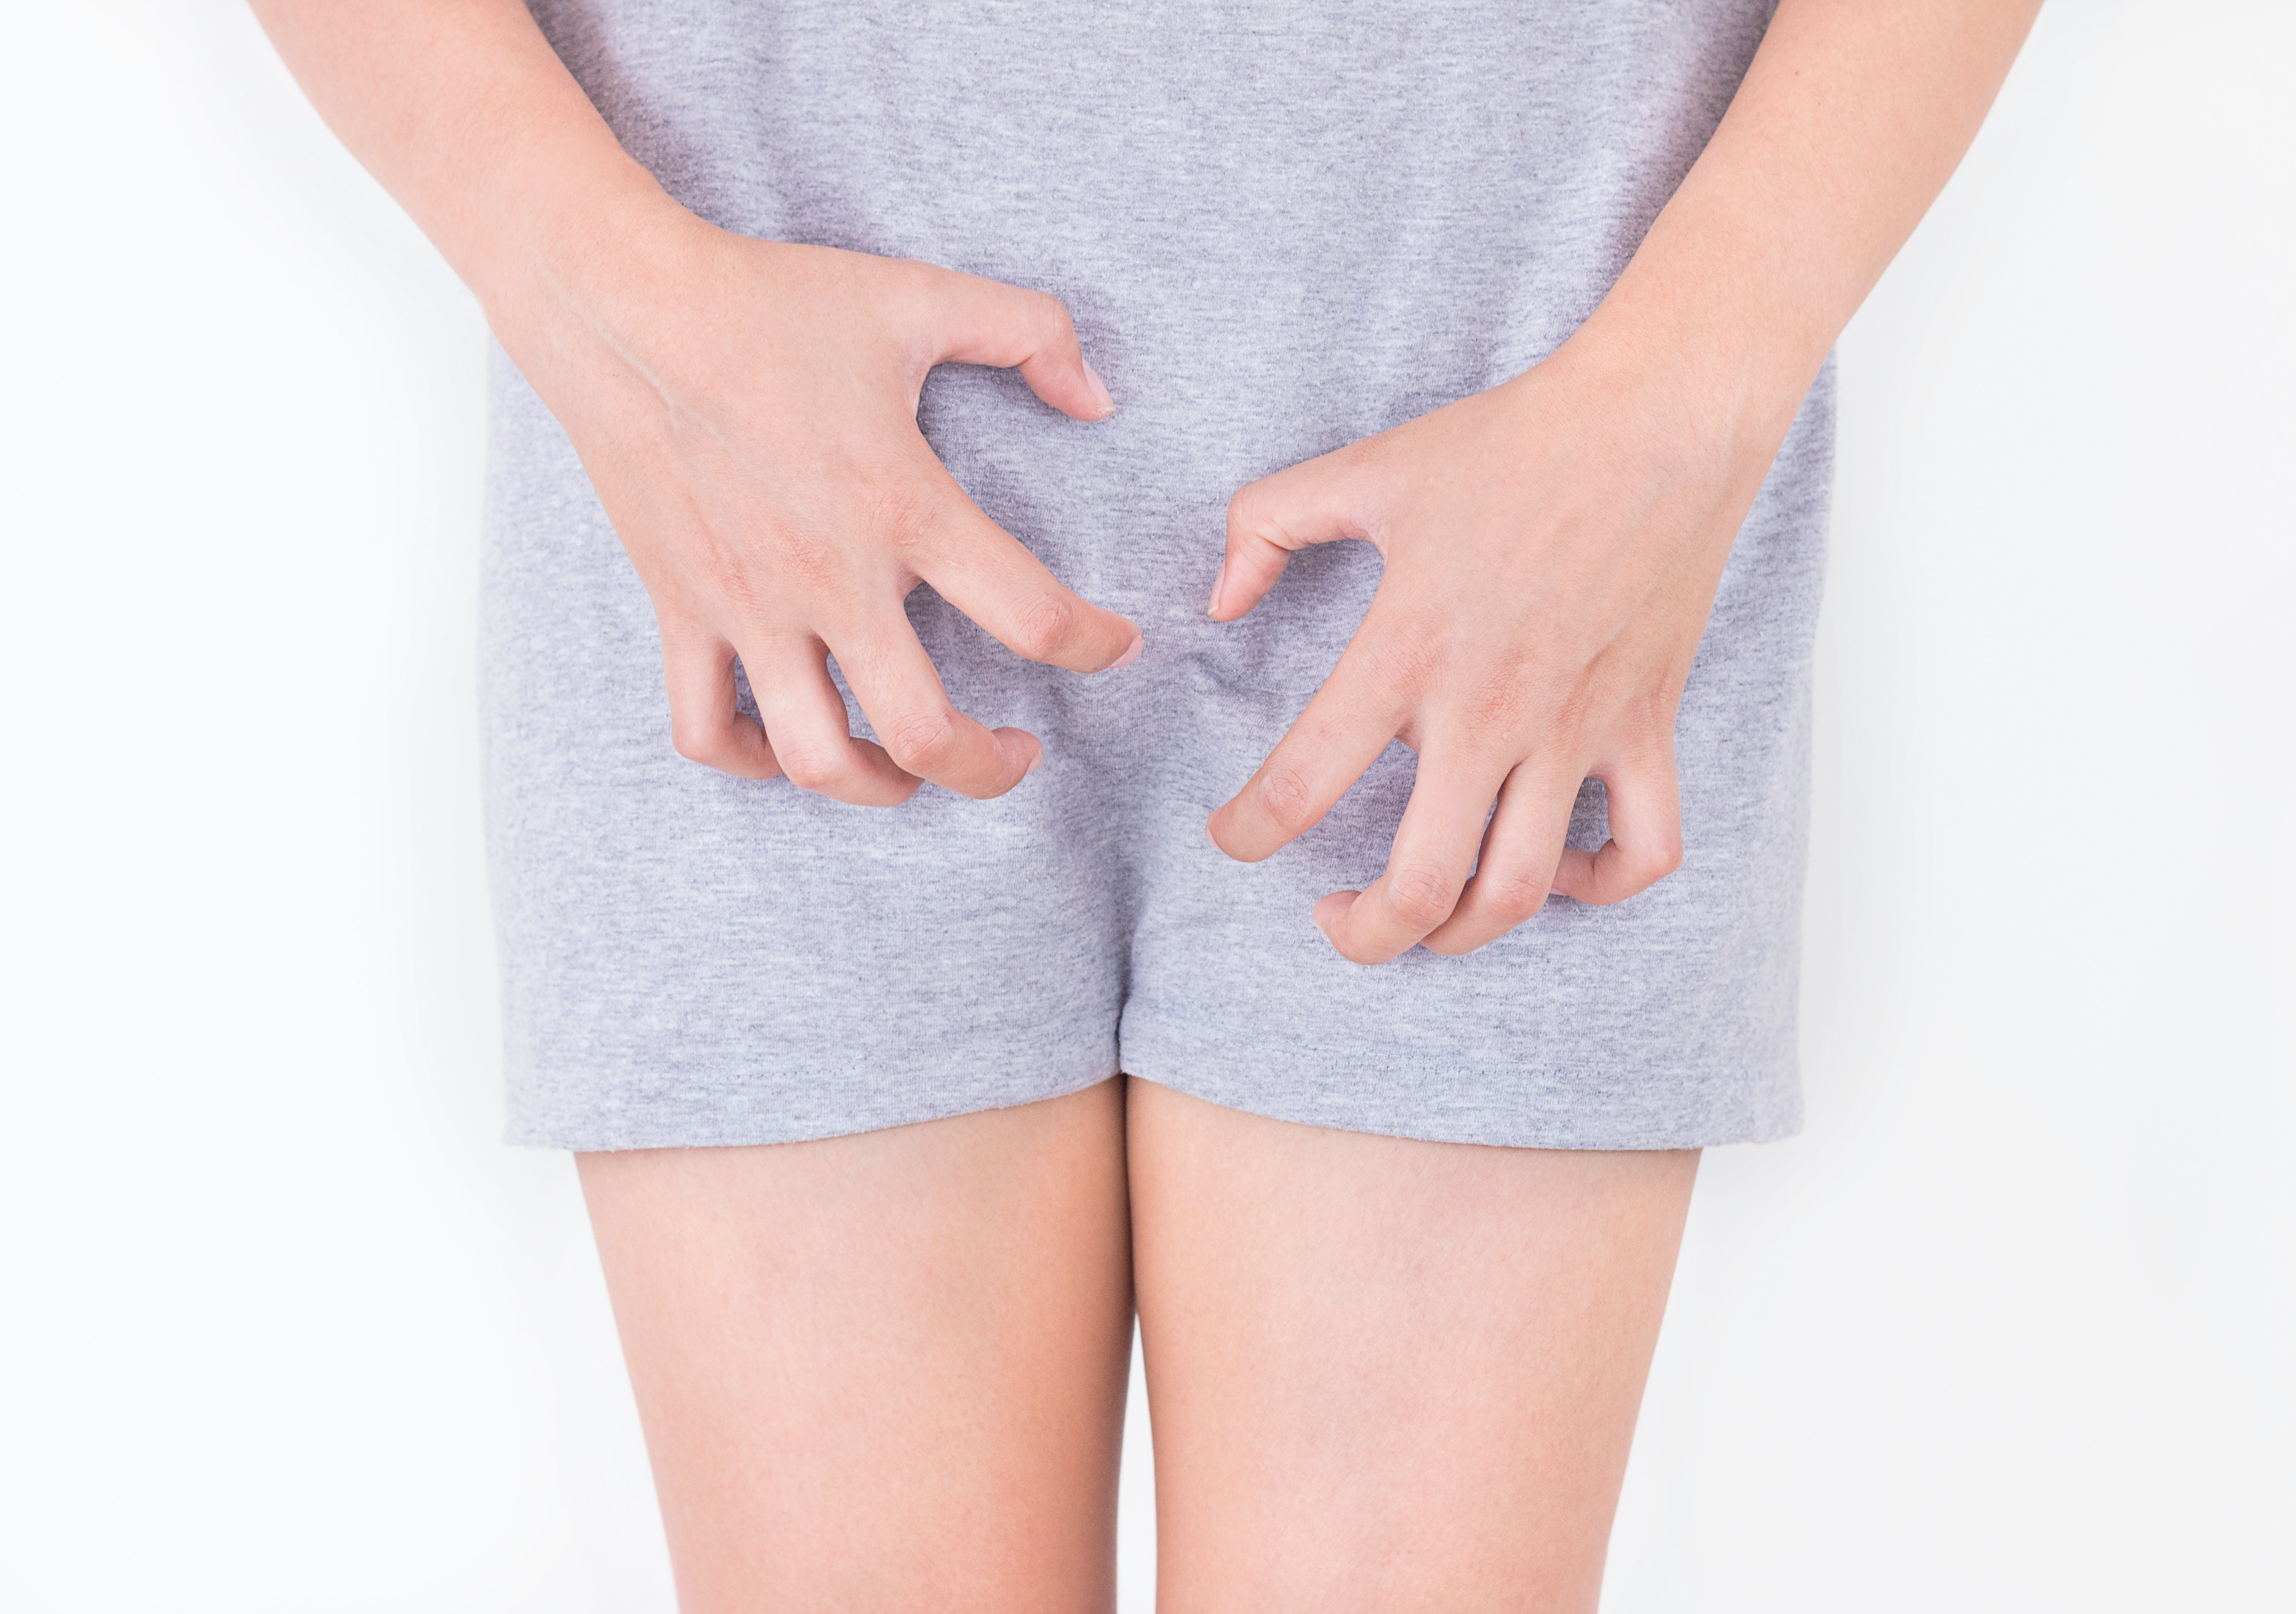 What causes irritation in the groin